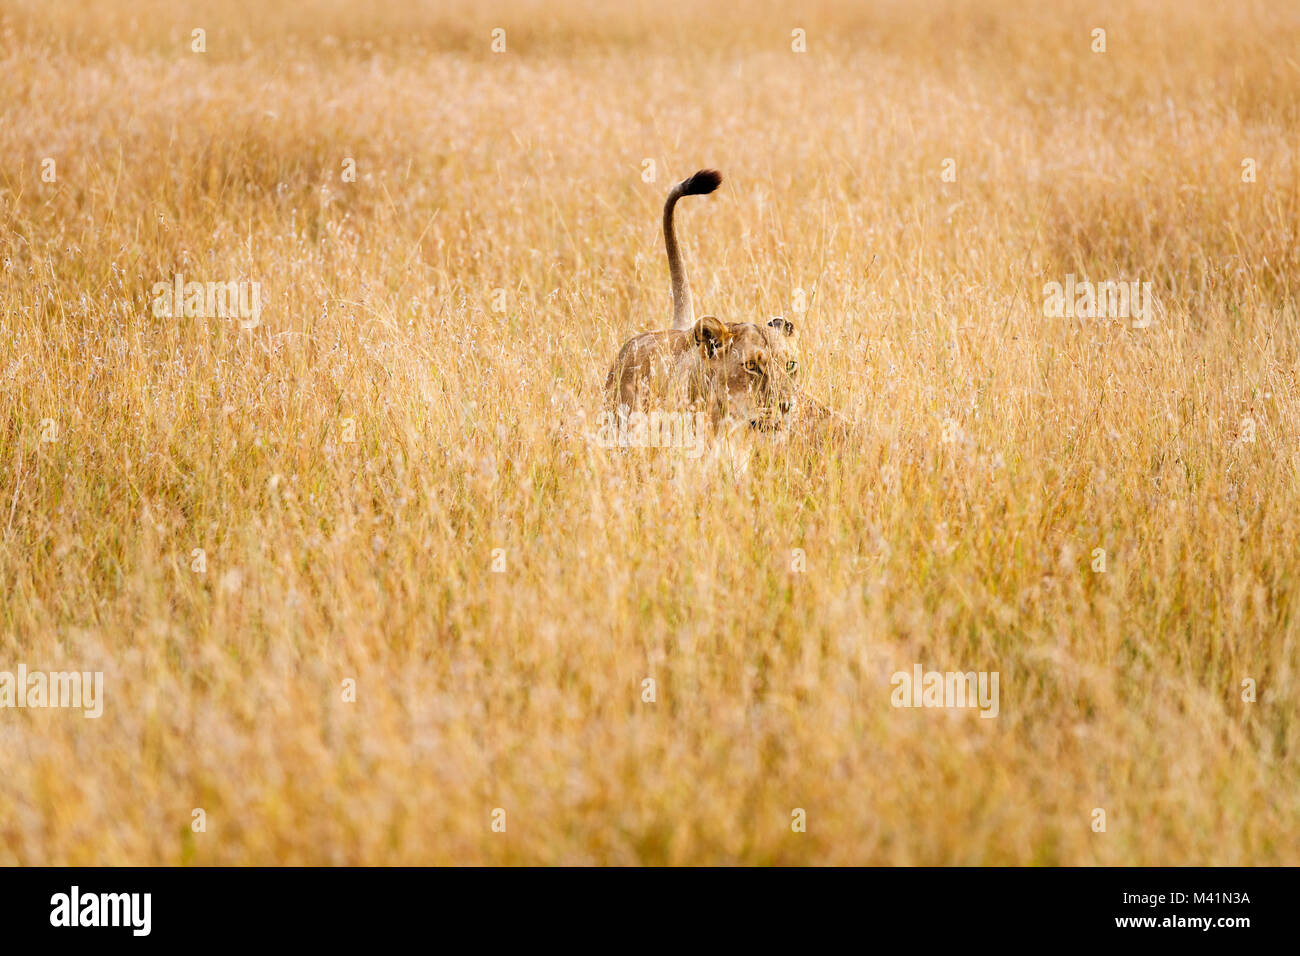 Big 5 apex predator hunting: Stealthy lioness (Panthera leo) with raised tail prowling in long grass stalking prey, - Stock Image